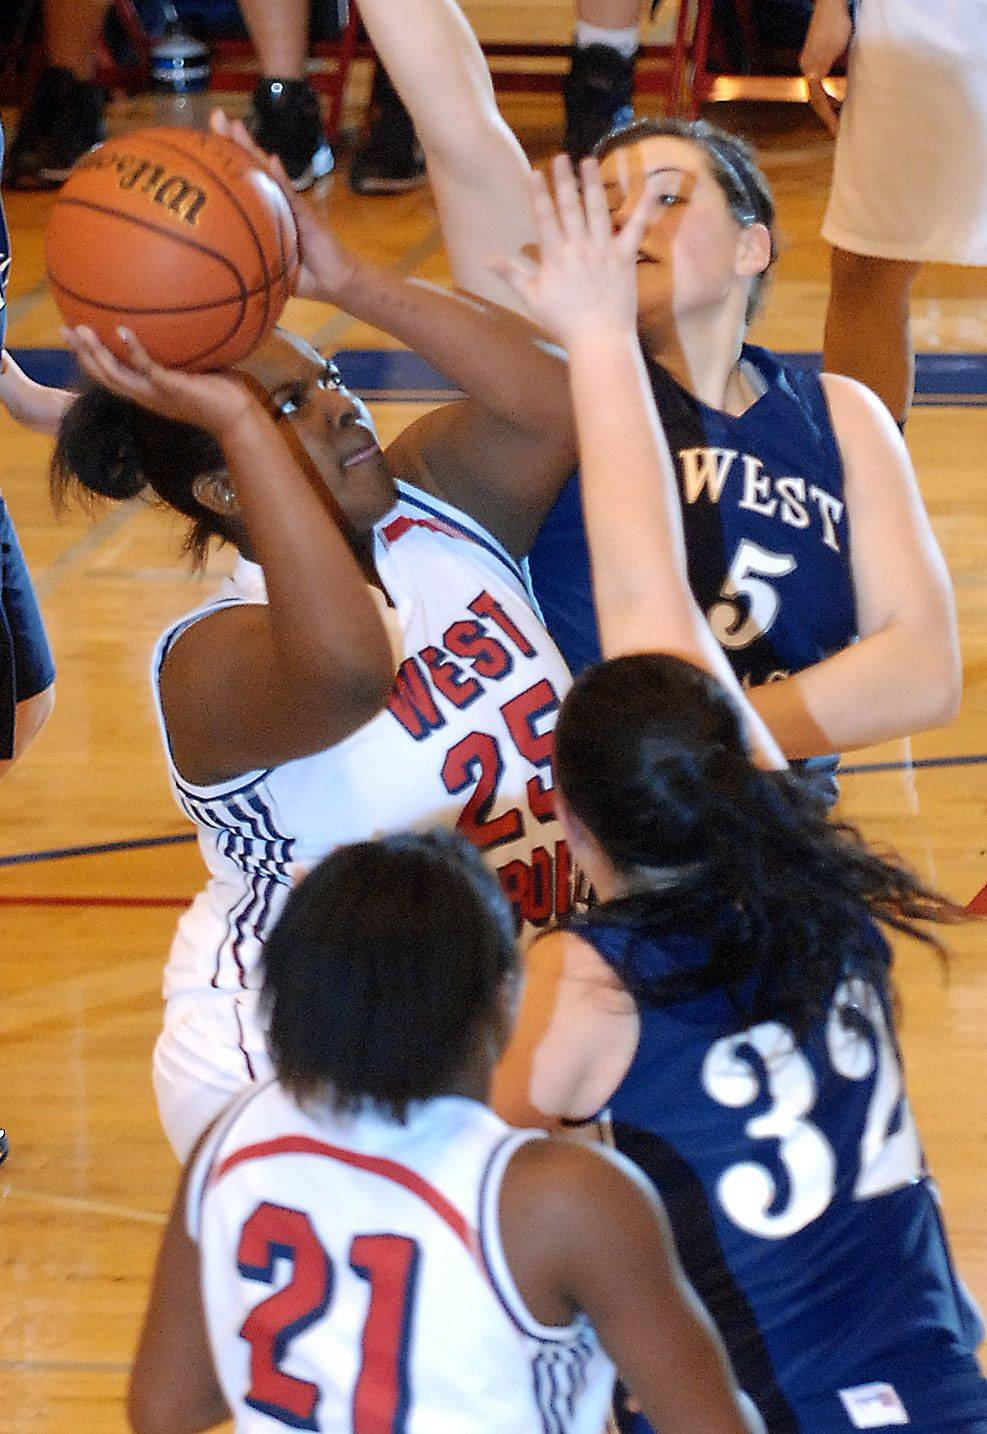 West Aurora's Jonica Walker puts up a shot in a crowded lane.